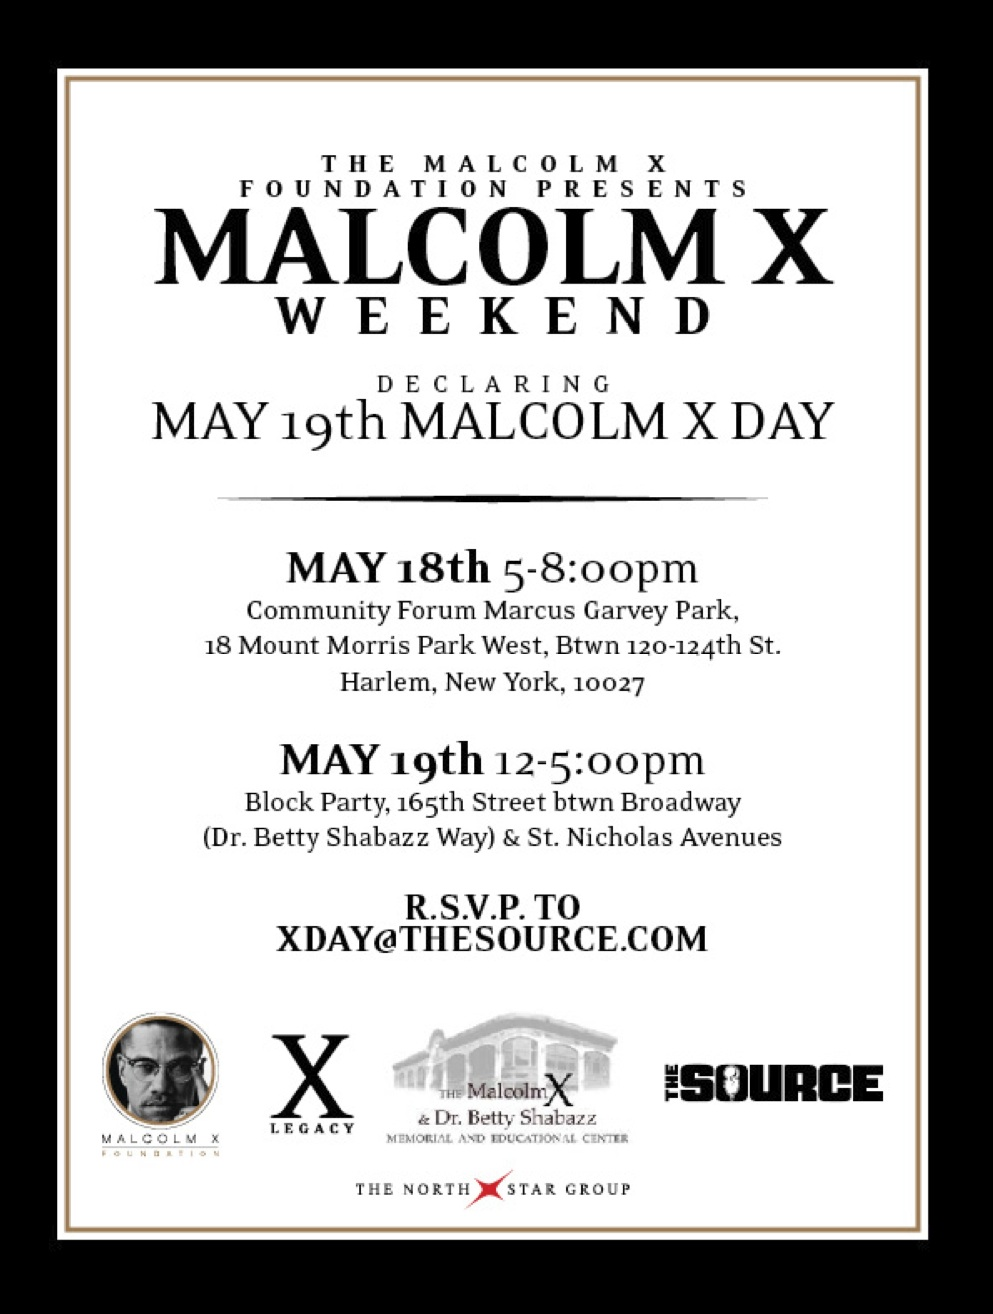 malcolm x chapters 17 19 The autobiography of malcolm x was published in 1965, the result of a  collaboration between  in the autobiography's epilogue, haley describes the  incident: i sent malcolm x some rough chapters to read i was appalled when  they were soon returned,.